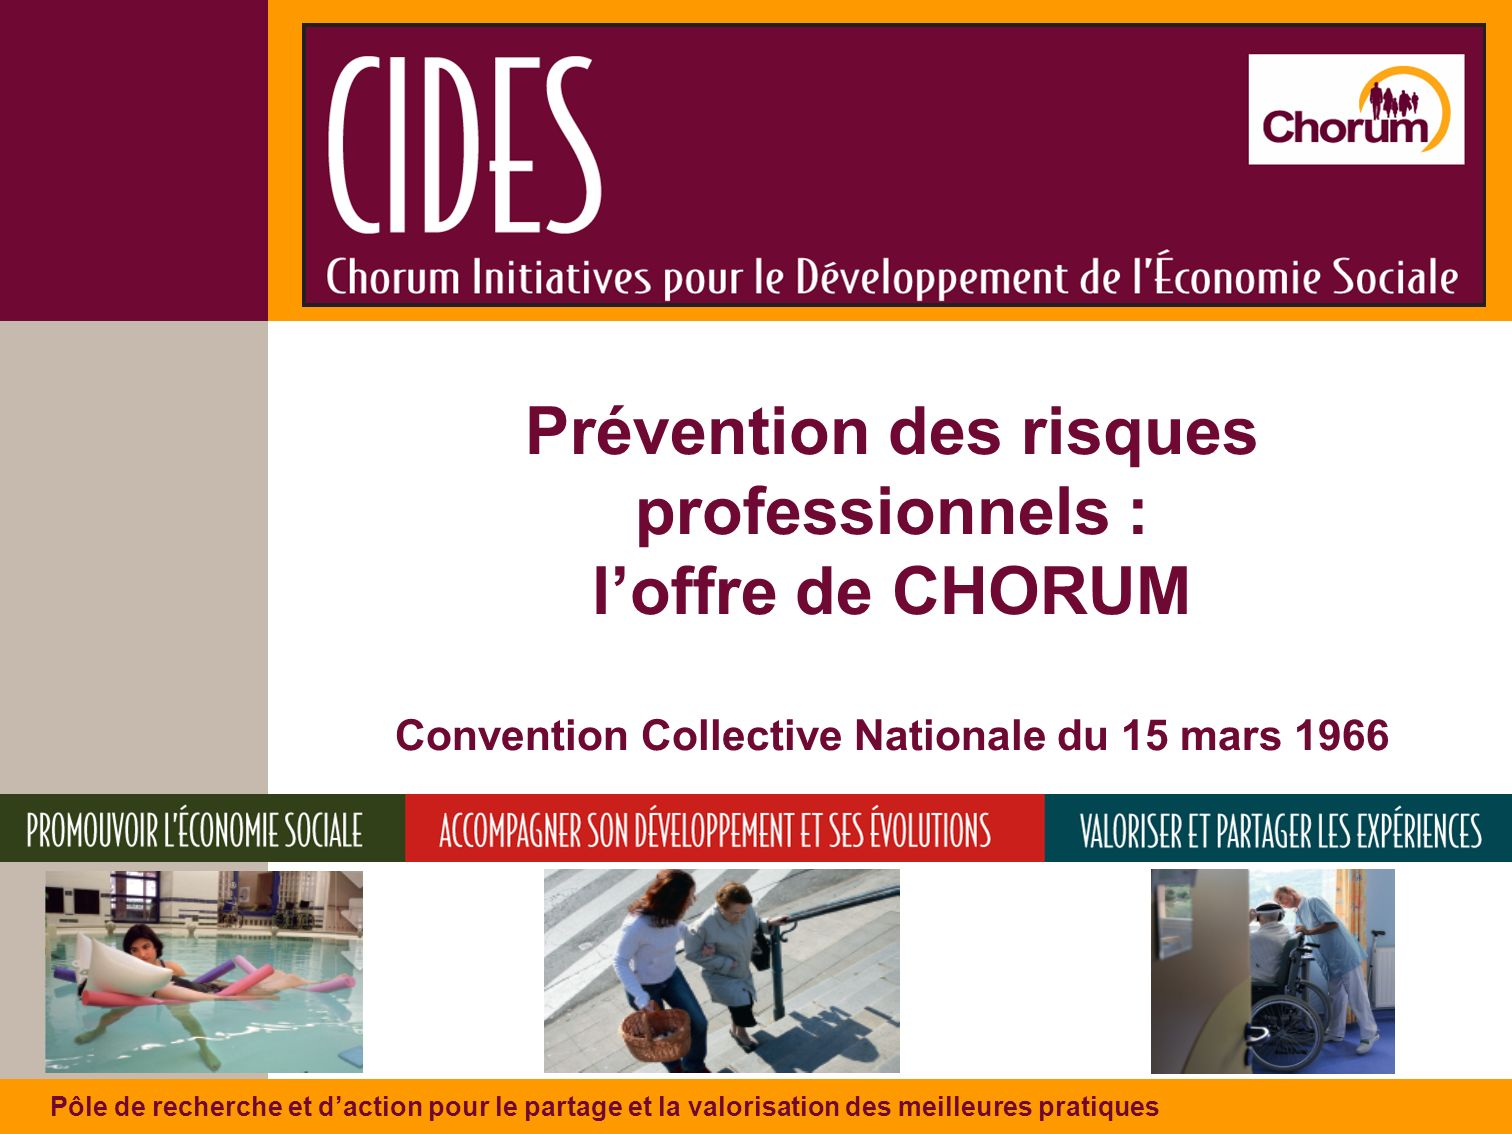 Prévention des risques professionnels : l'offre de CHORUM Convention Collective Nationale du 15 mars 1966